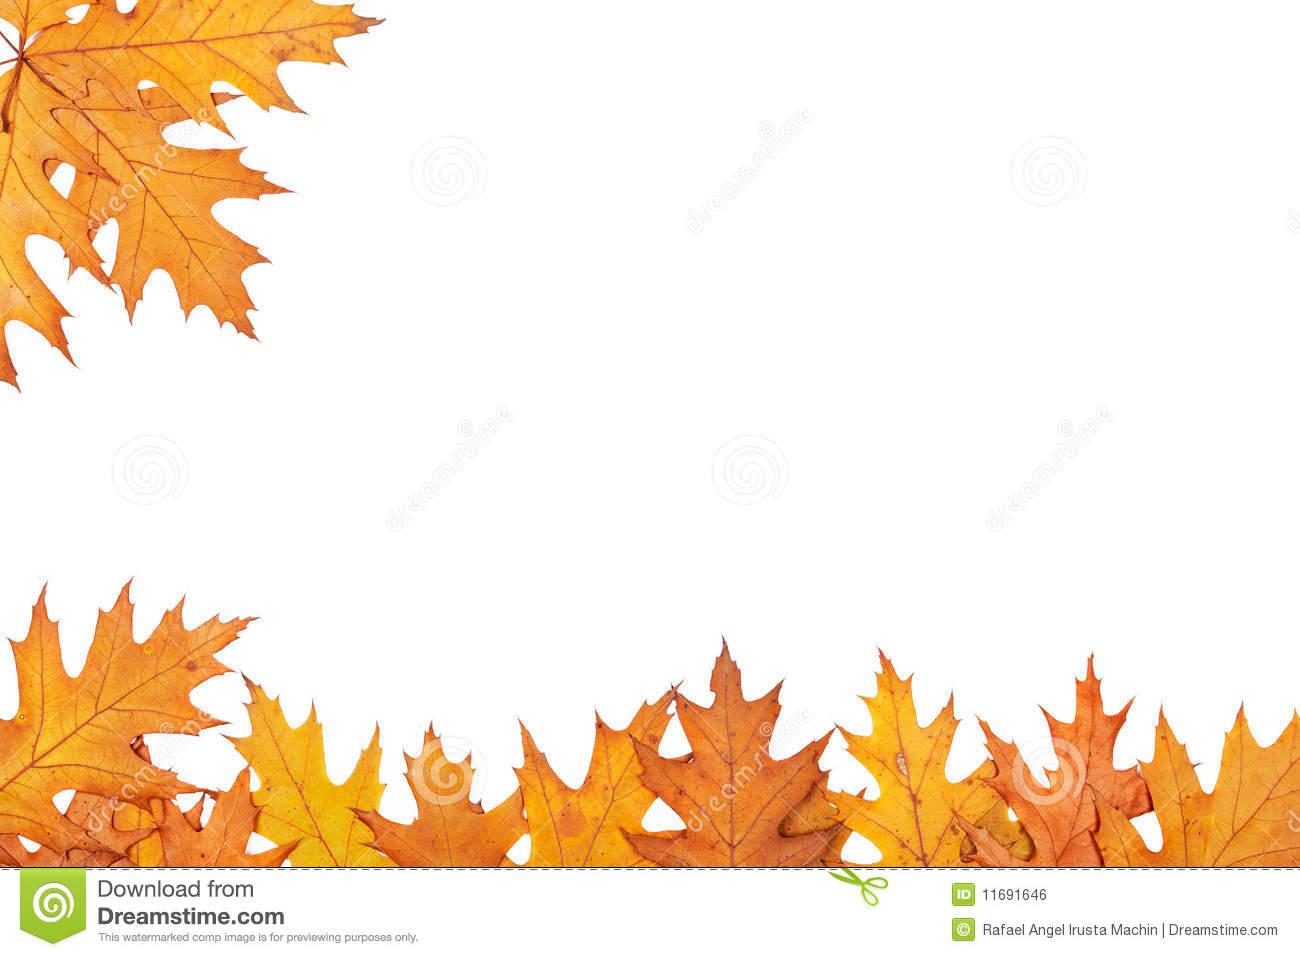 7 Best Images of Free Printable Fall Borders Clip Art ...